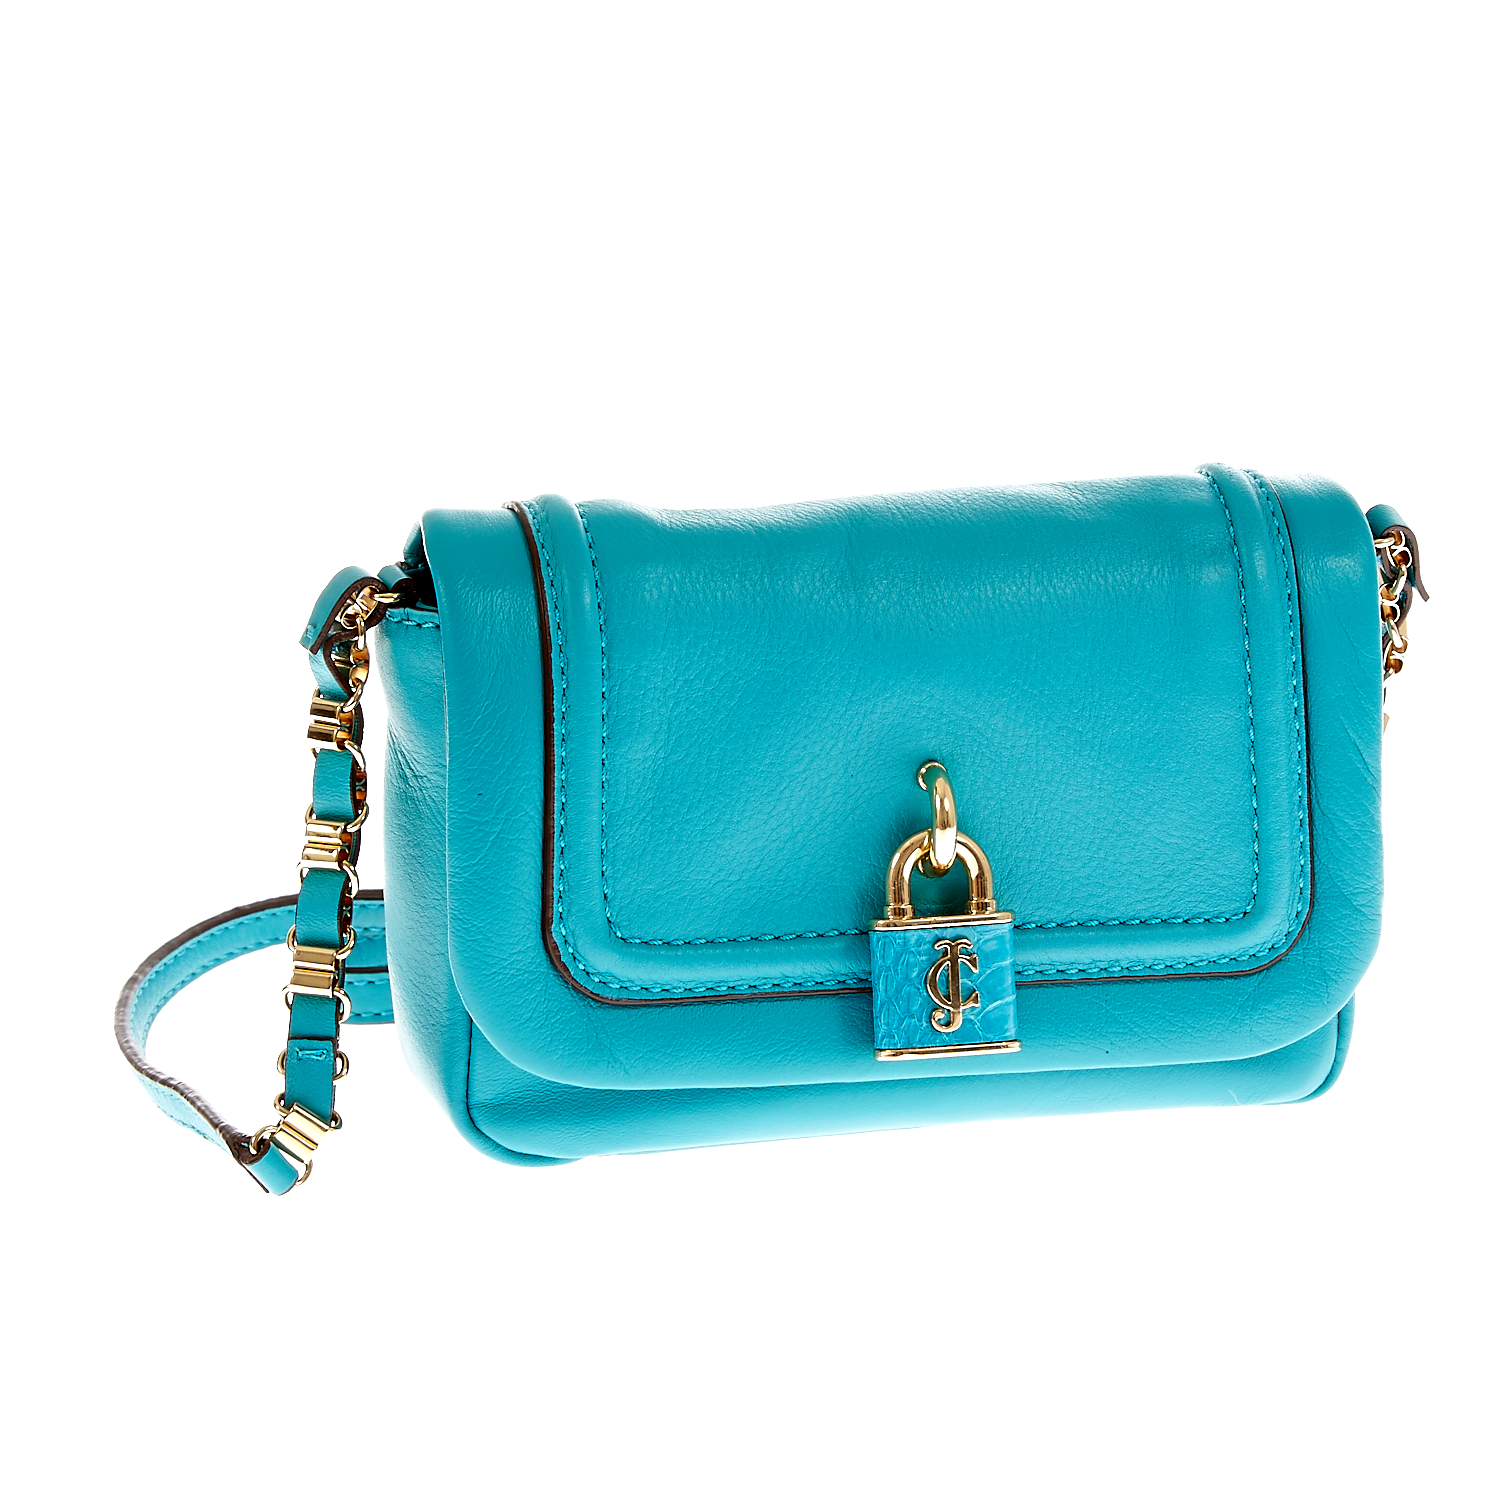 JUICY COUTURE – Γυναικεία τσάντα Juicy Couture τυρκουάζ 1409479.0-00T1